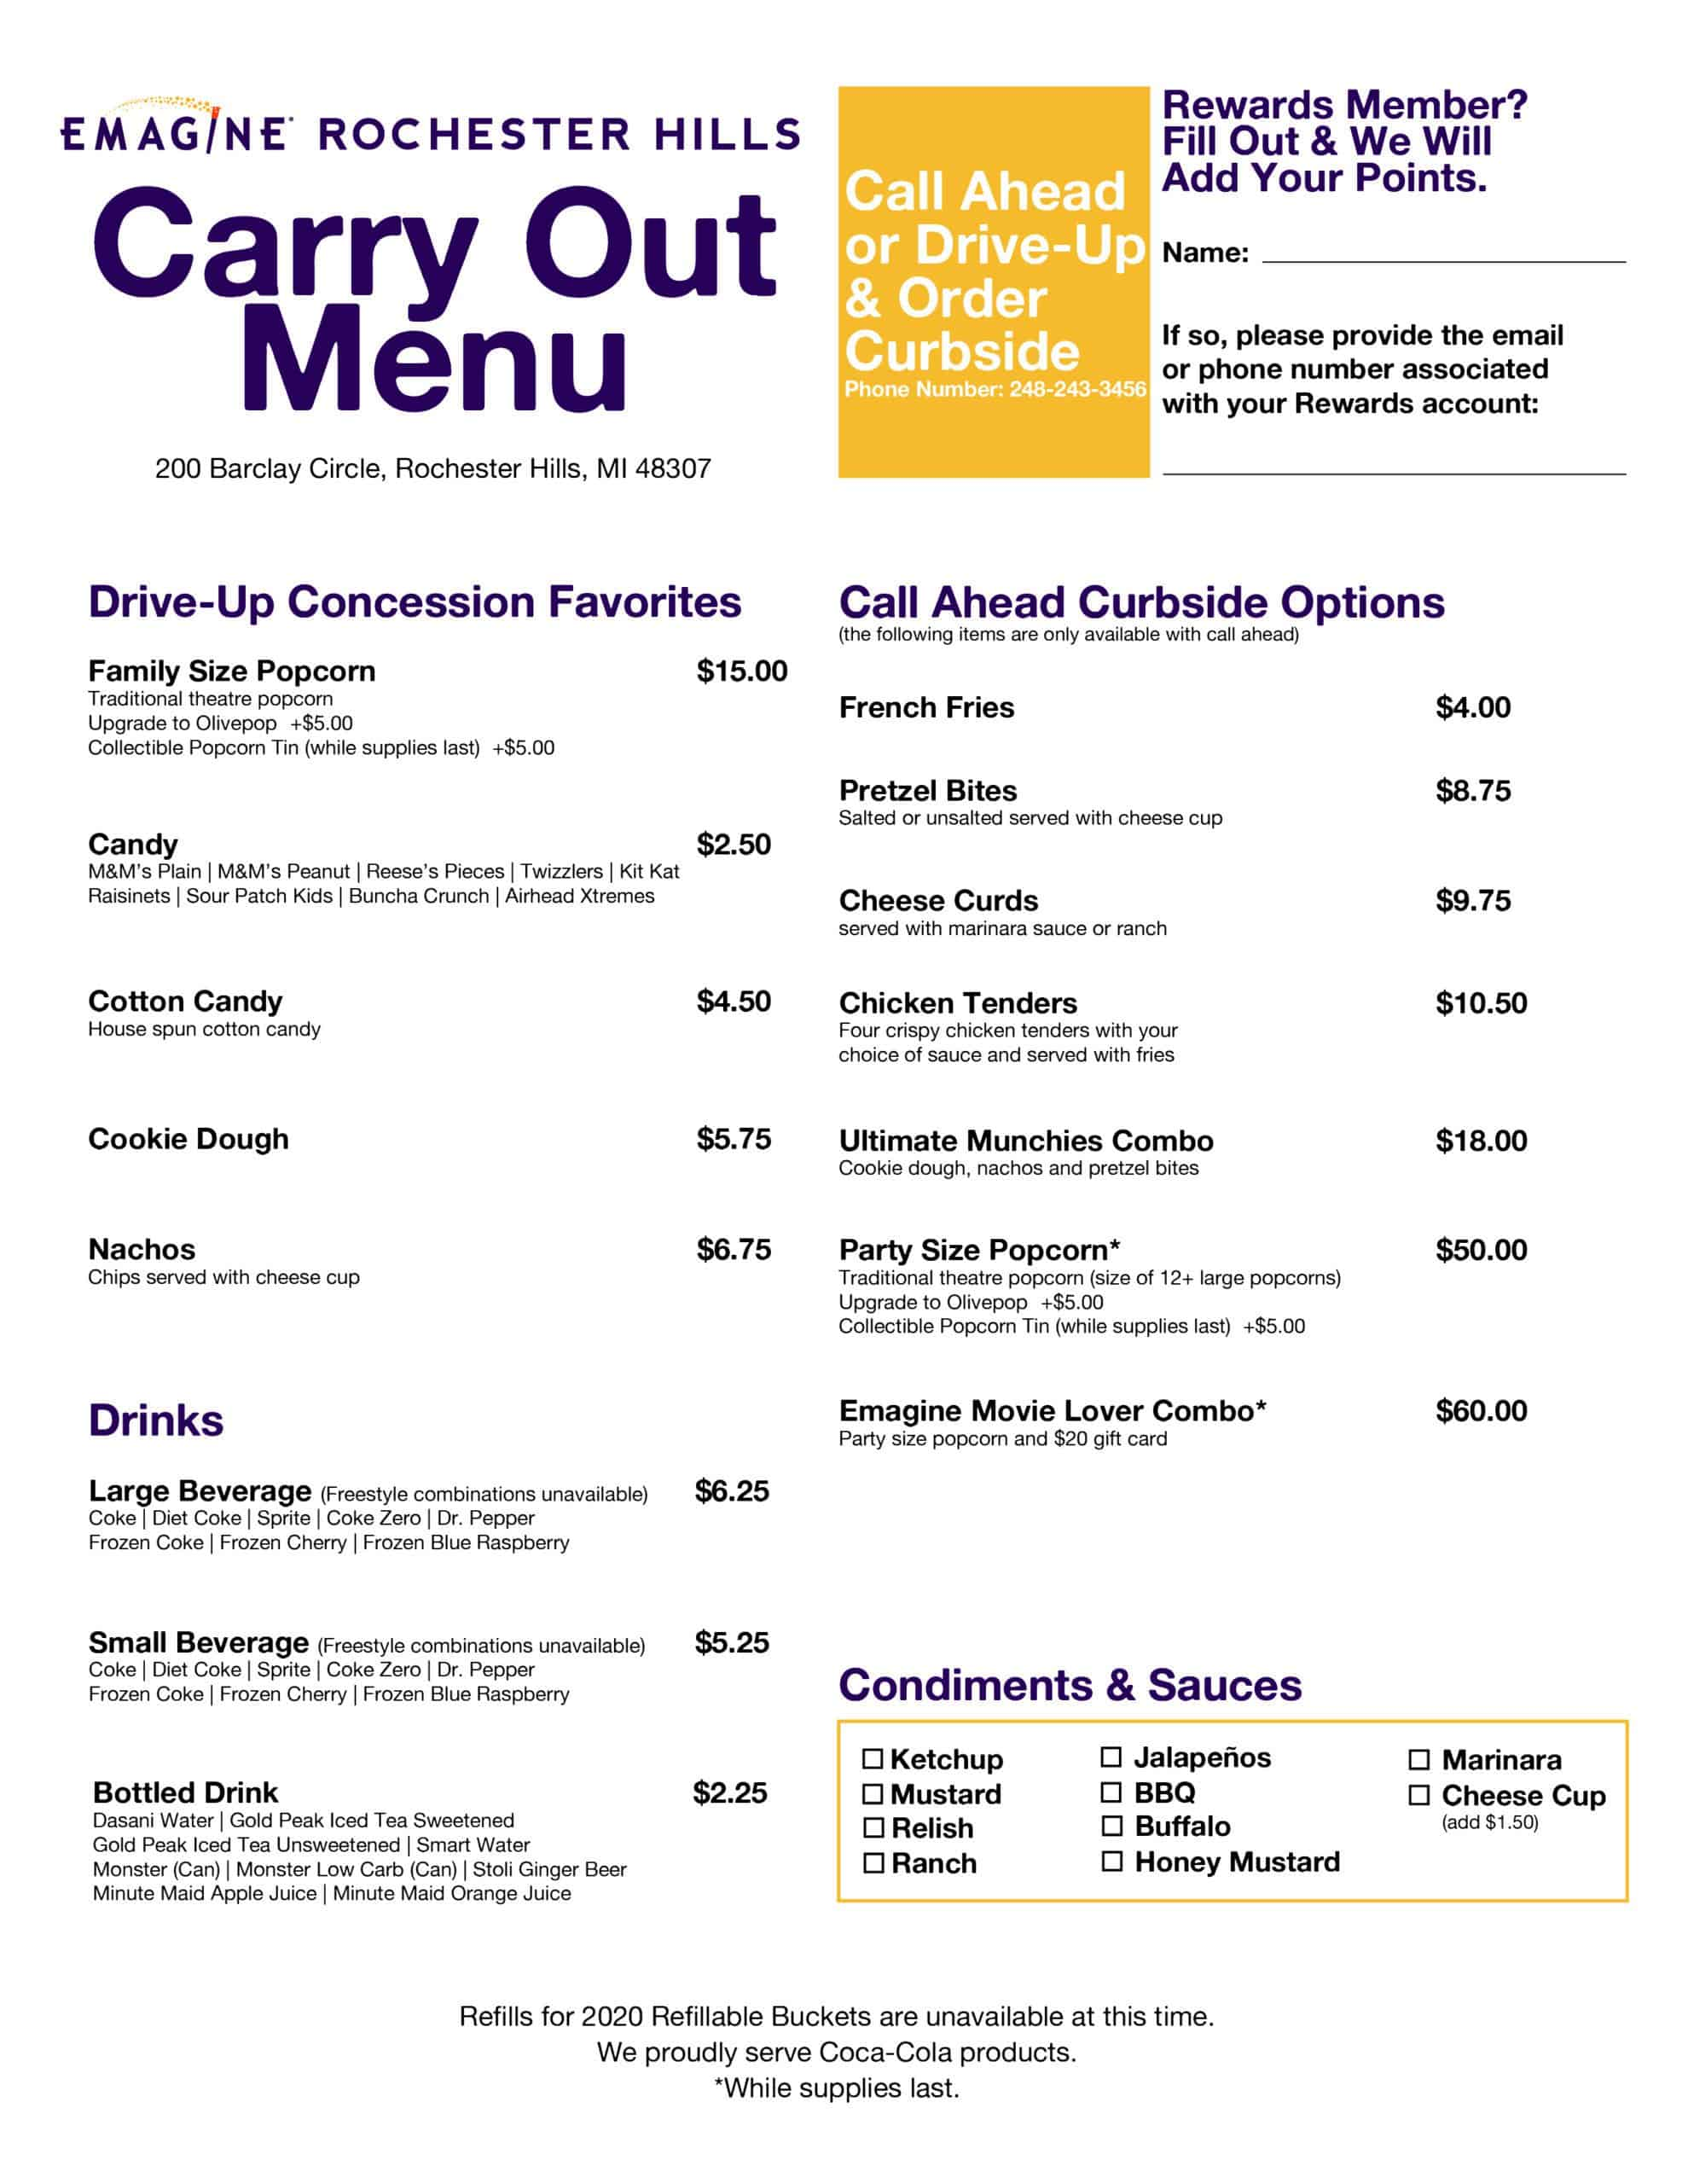 Emagine Rochester Hills Carry Out